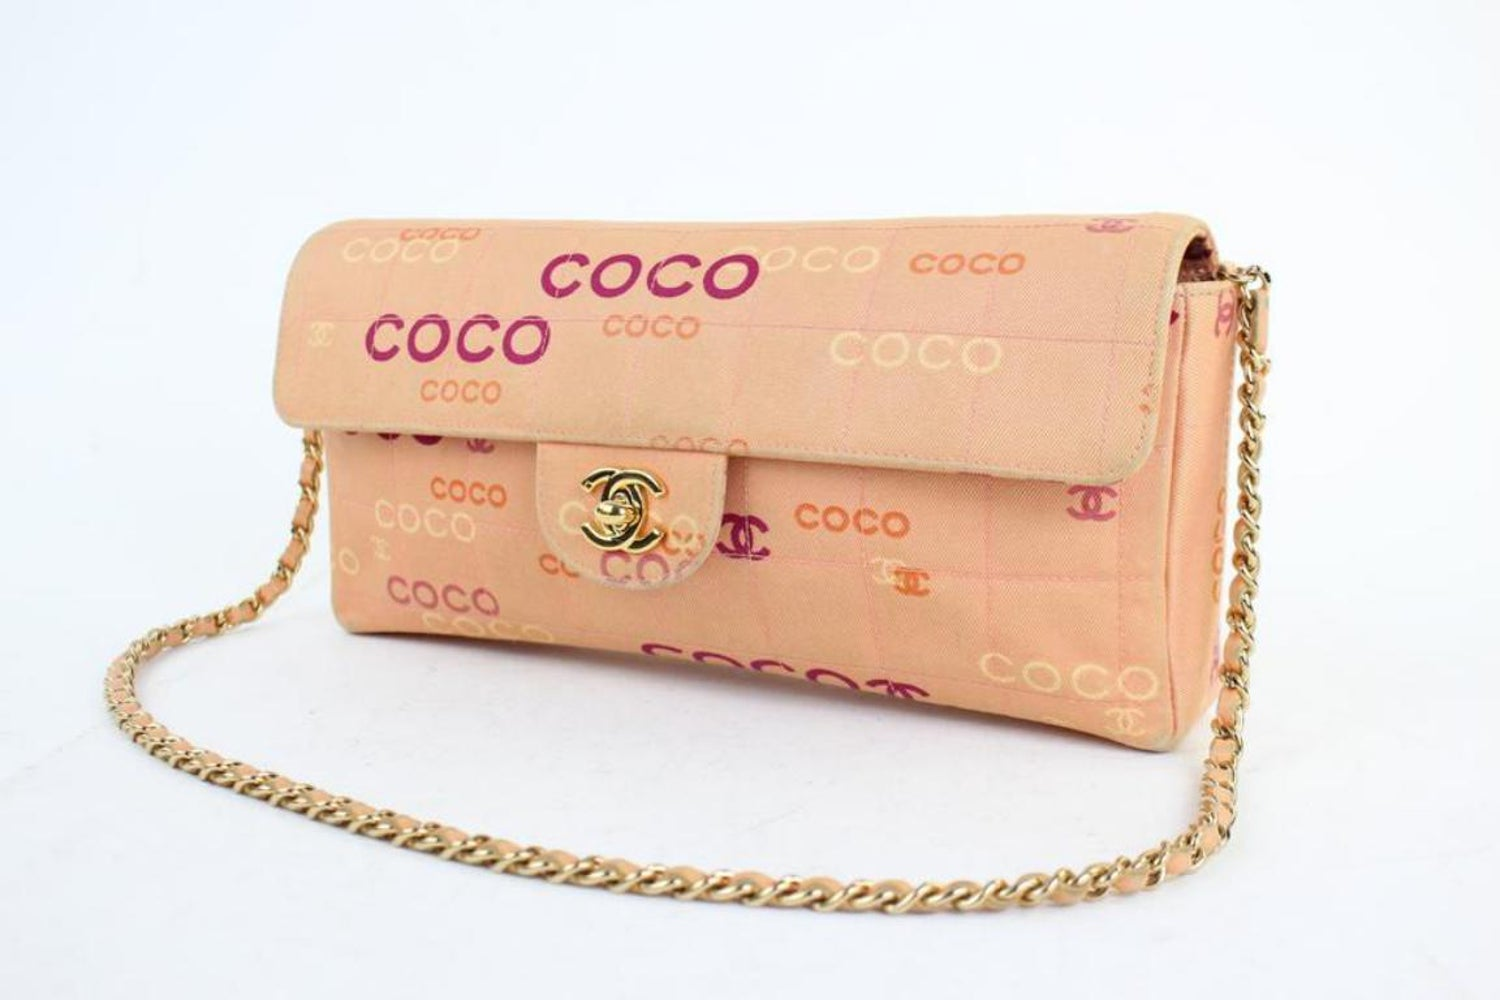 c65219168a40 Chanel East West Chocolate Bar Quilted Coco Flap 3ct915 Pink Canvas  Shoulder Bag at 1stdibs